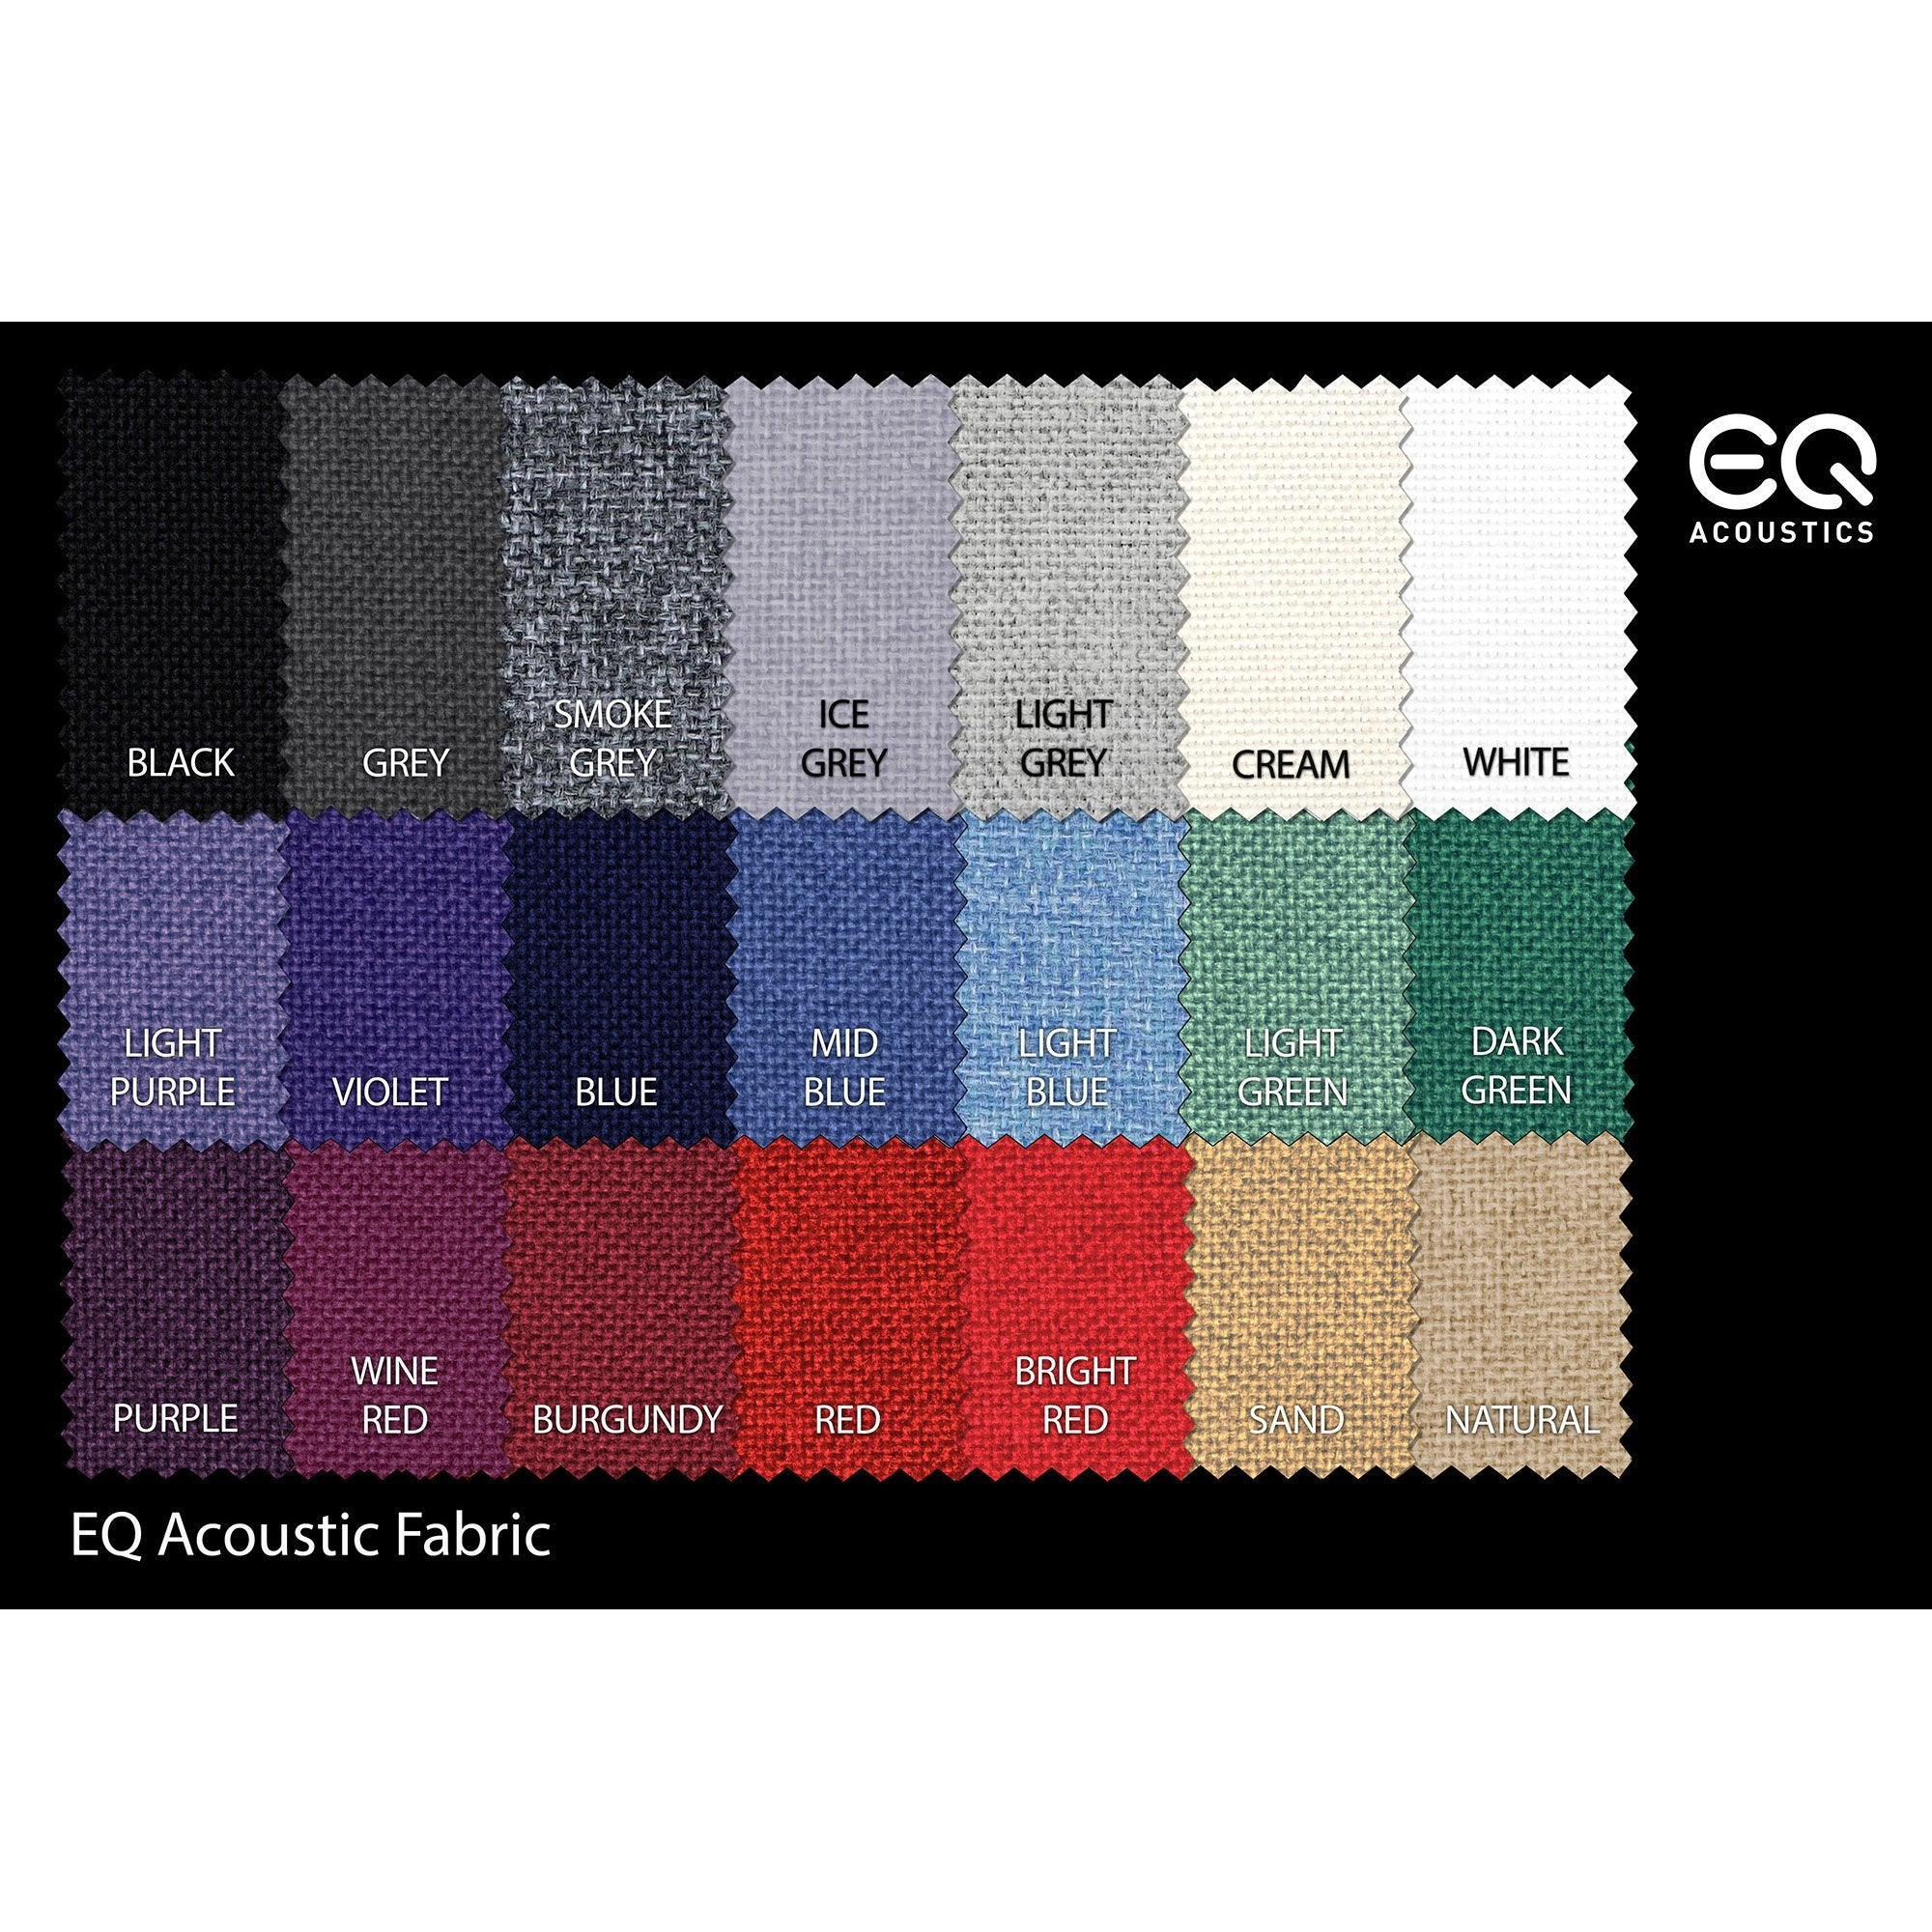 EQ Acoustic Fabric